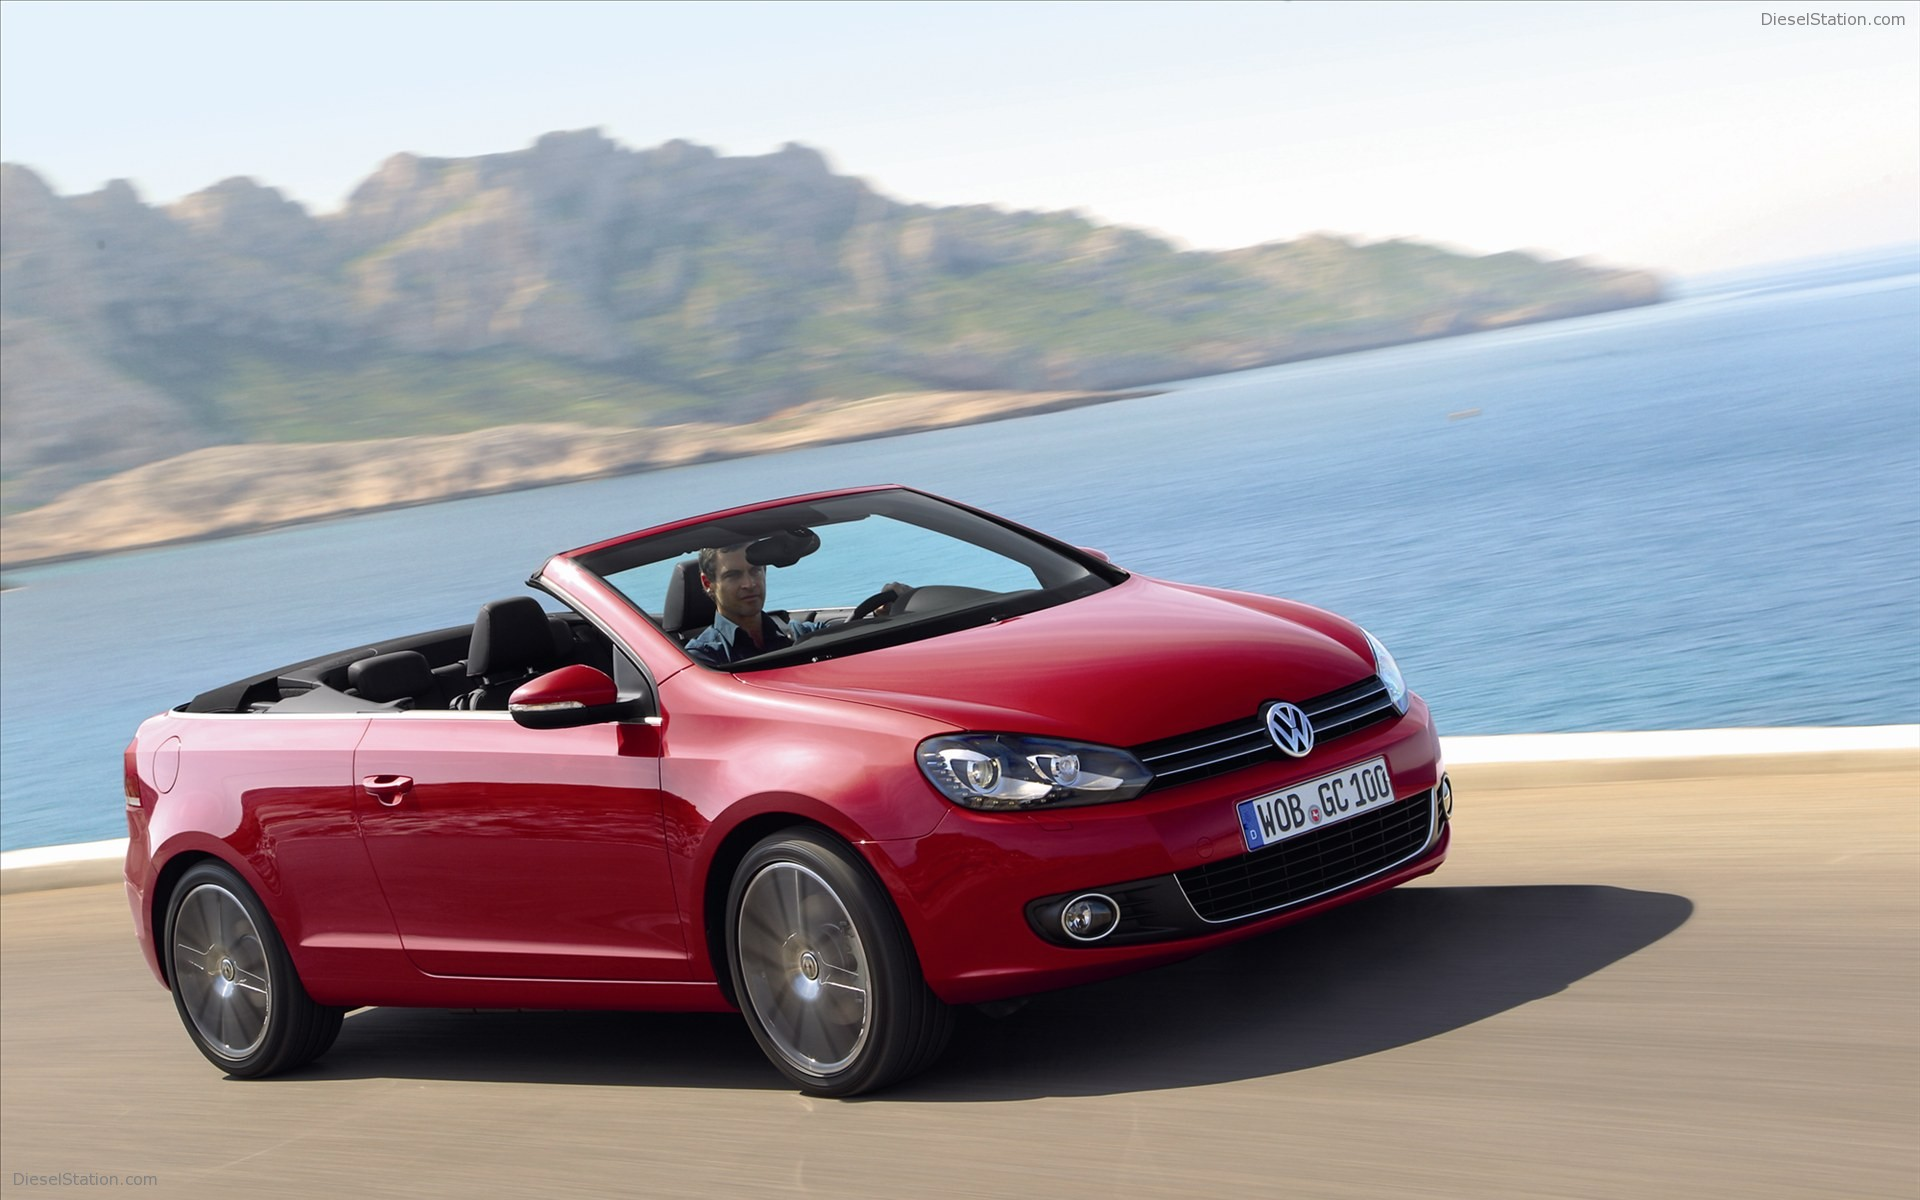 2011 Volkswagen Golf Cabriolet Convertible 2-door